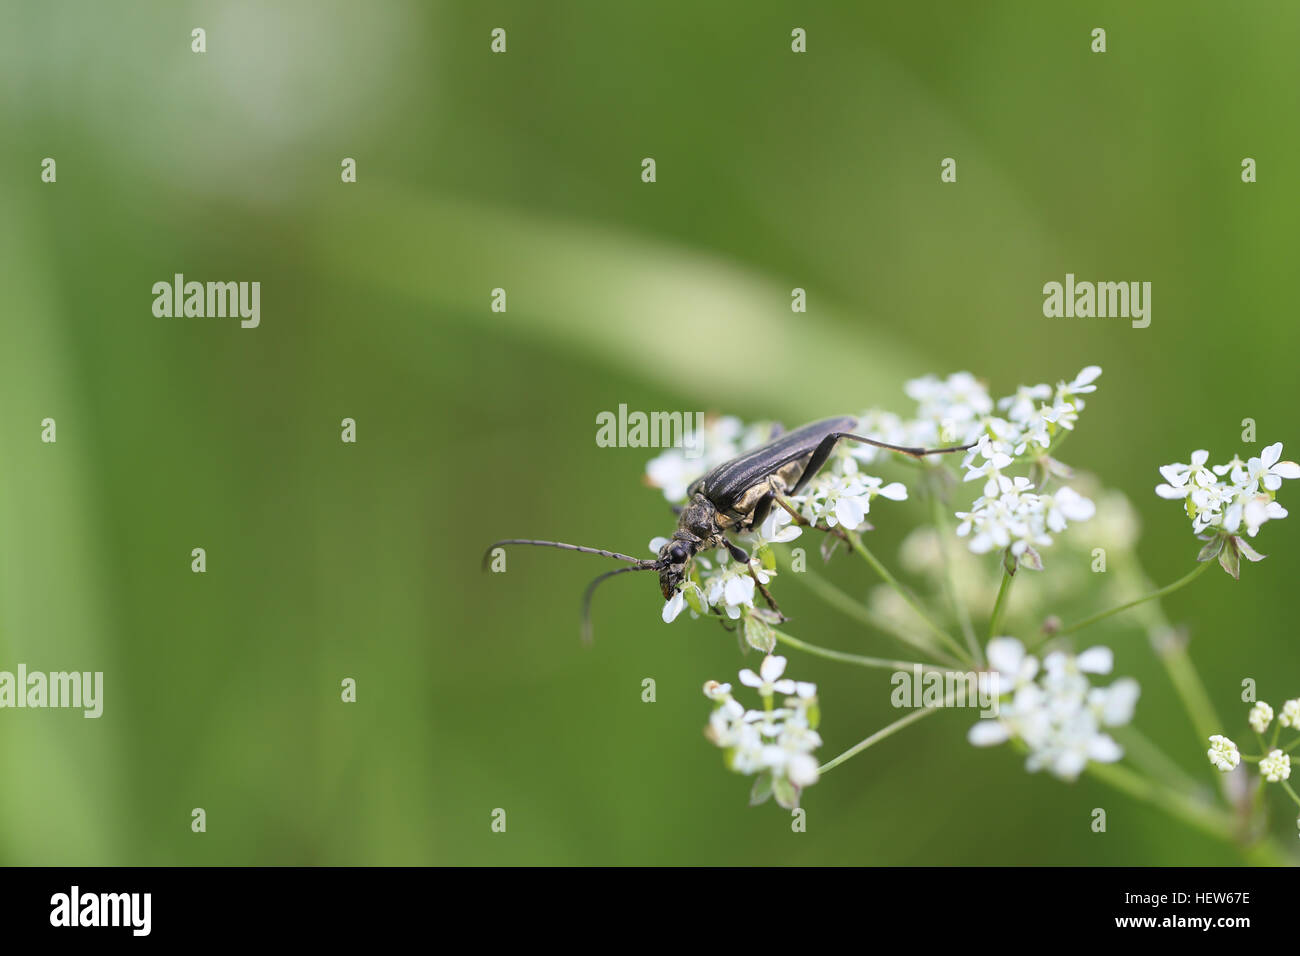 The long-horn beetle Oxymirus cursor. Photographed on Öland, Sweden - Stock Image